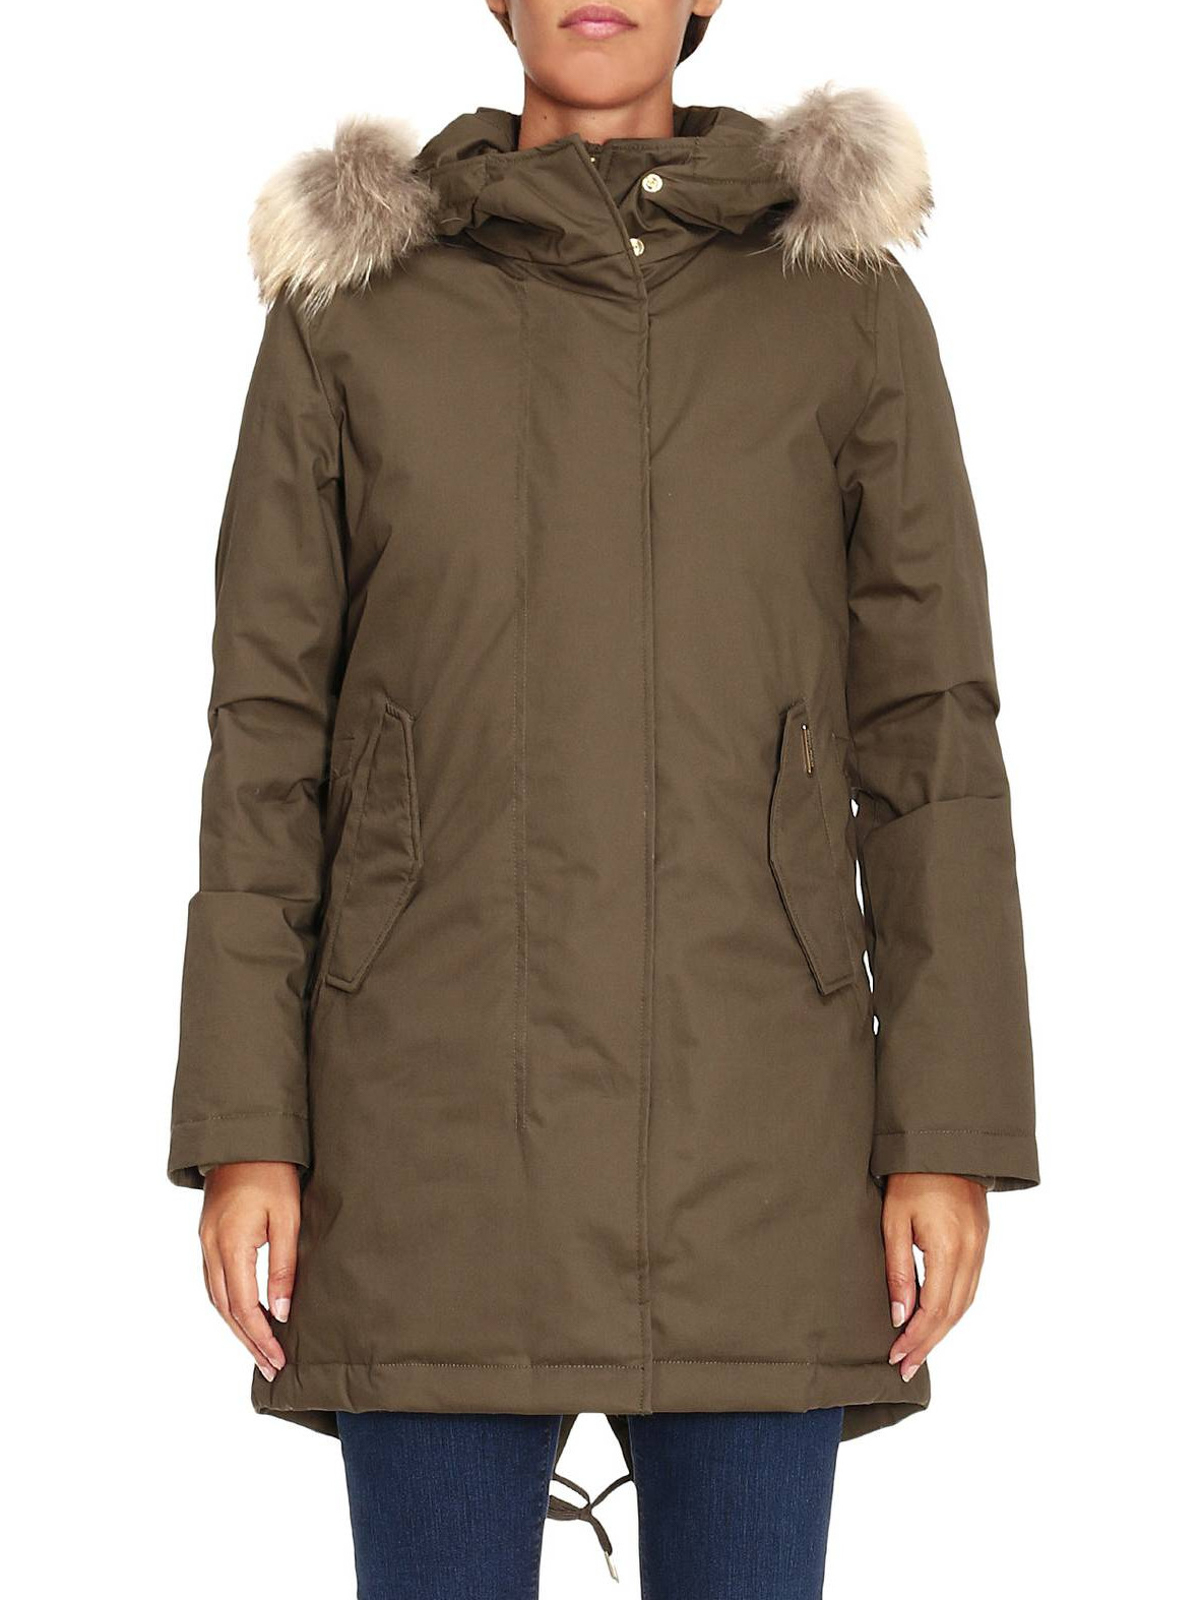 tiffany eskimo down parka by woolrich padded coats shop online at wwcps2500 lm10. Black Bedroom Furniture Sets. Home Design Ideas